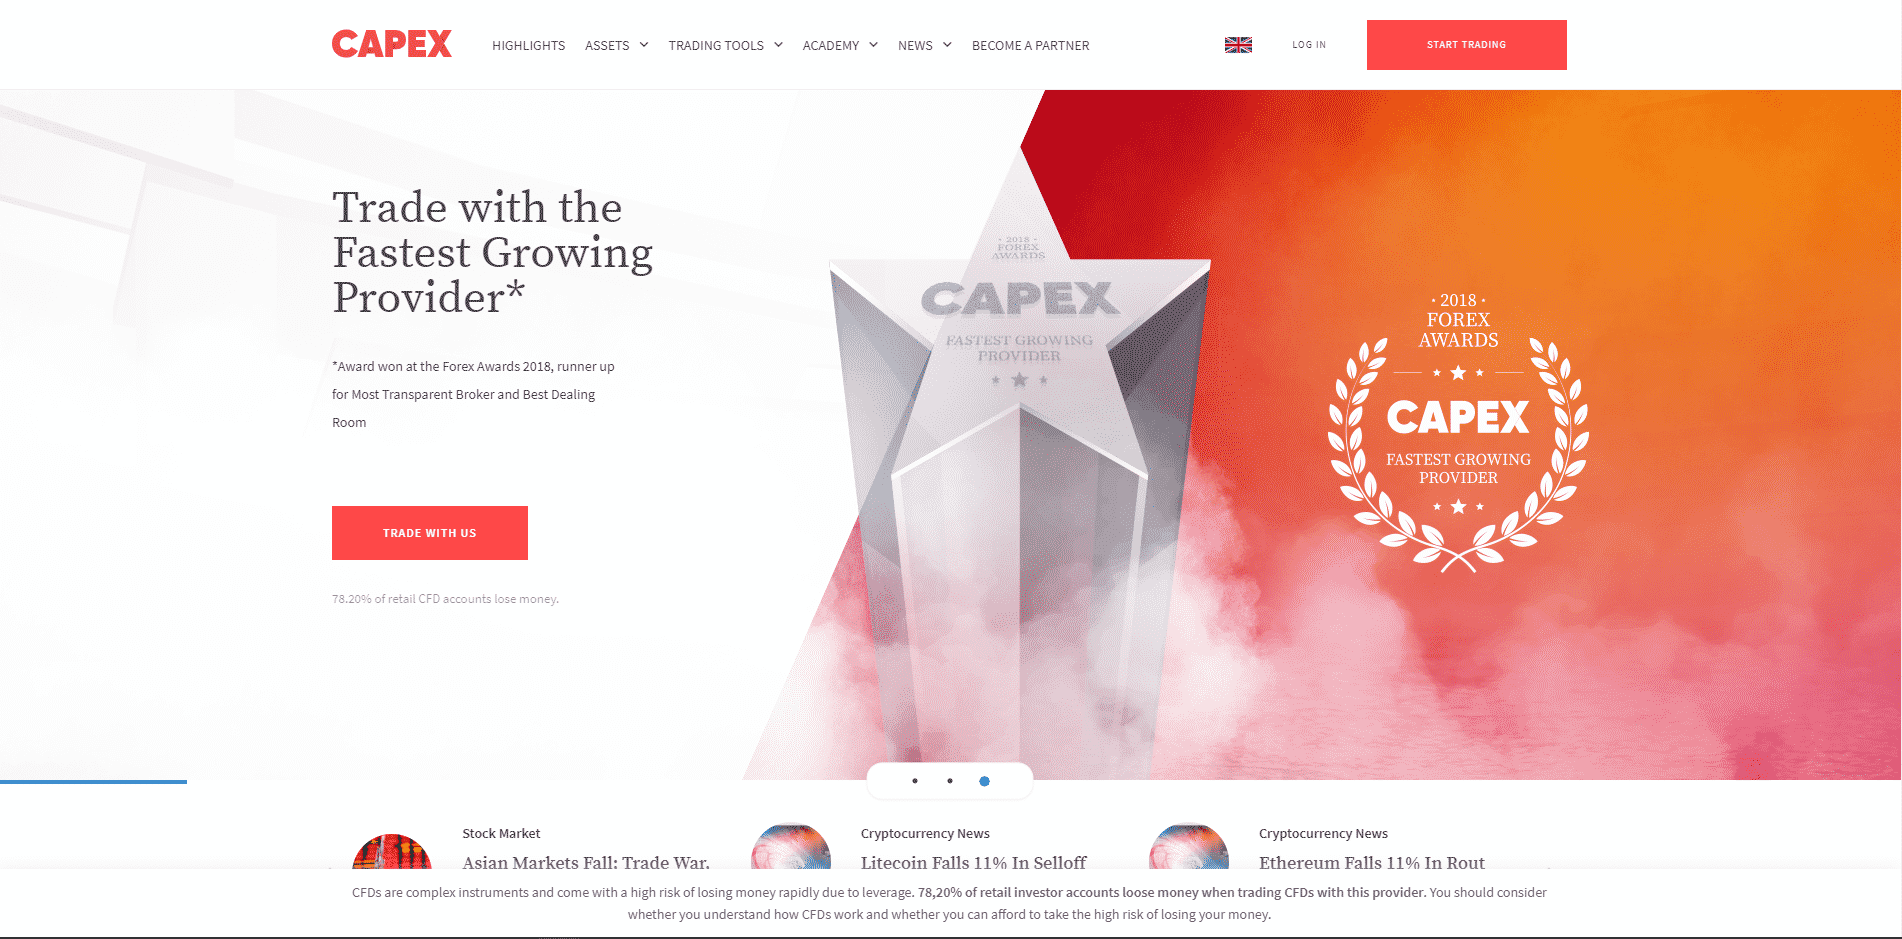 Capex Website Screenshot